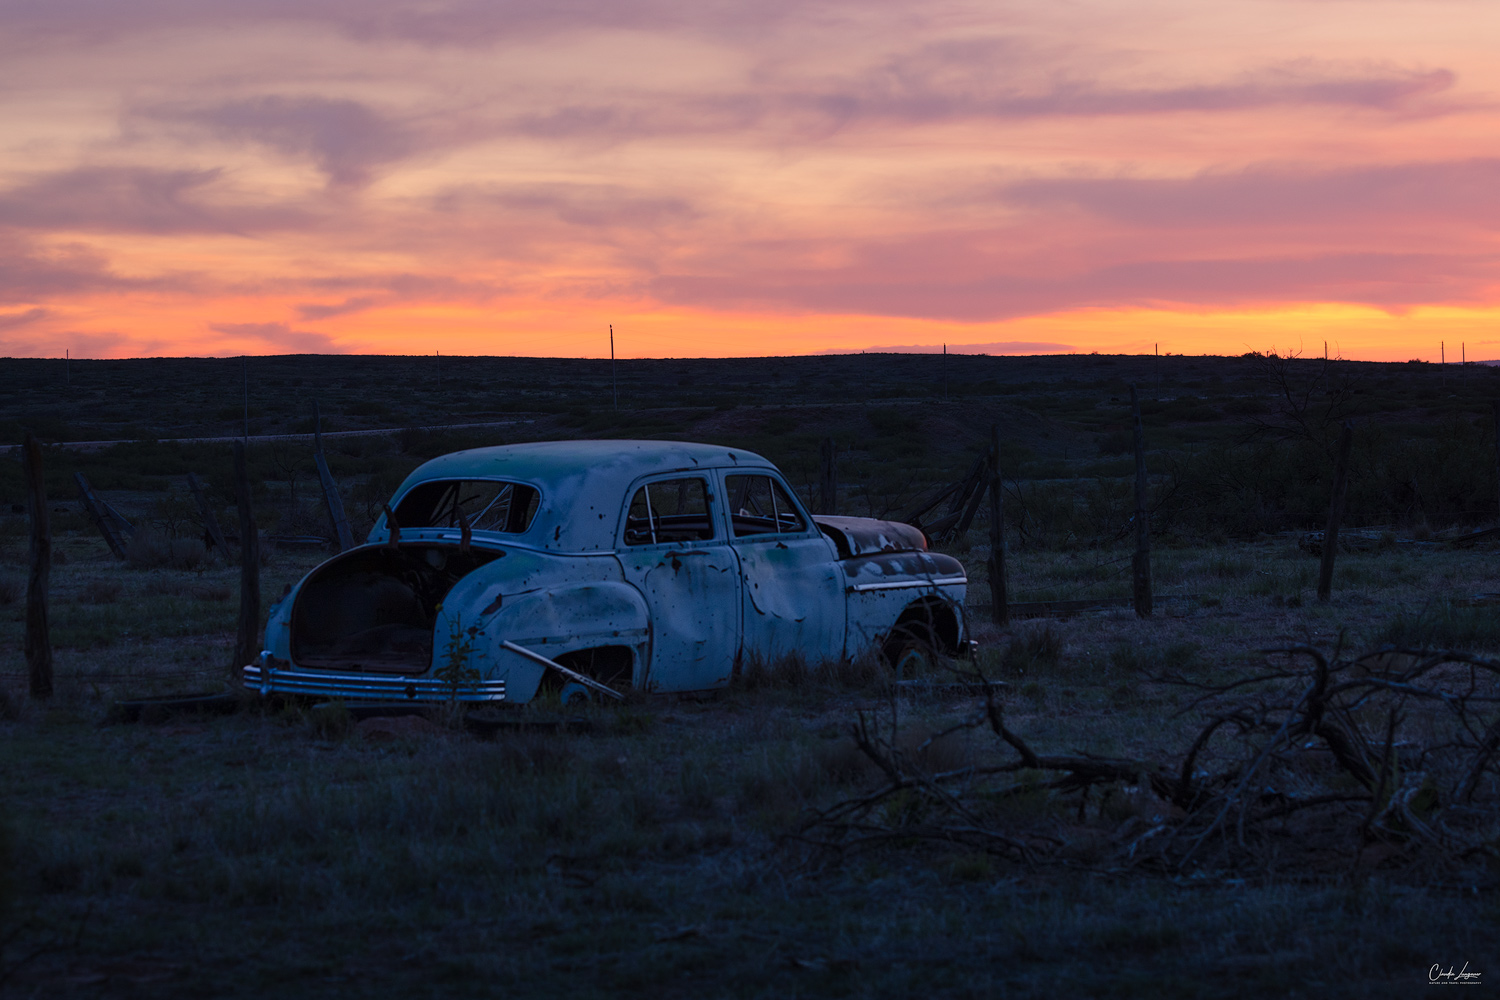 View of abandoned car in the ghost town of Endee in New Mexico at sunset.